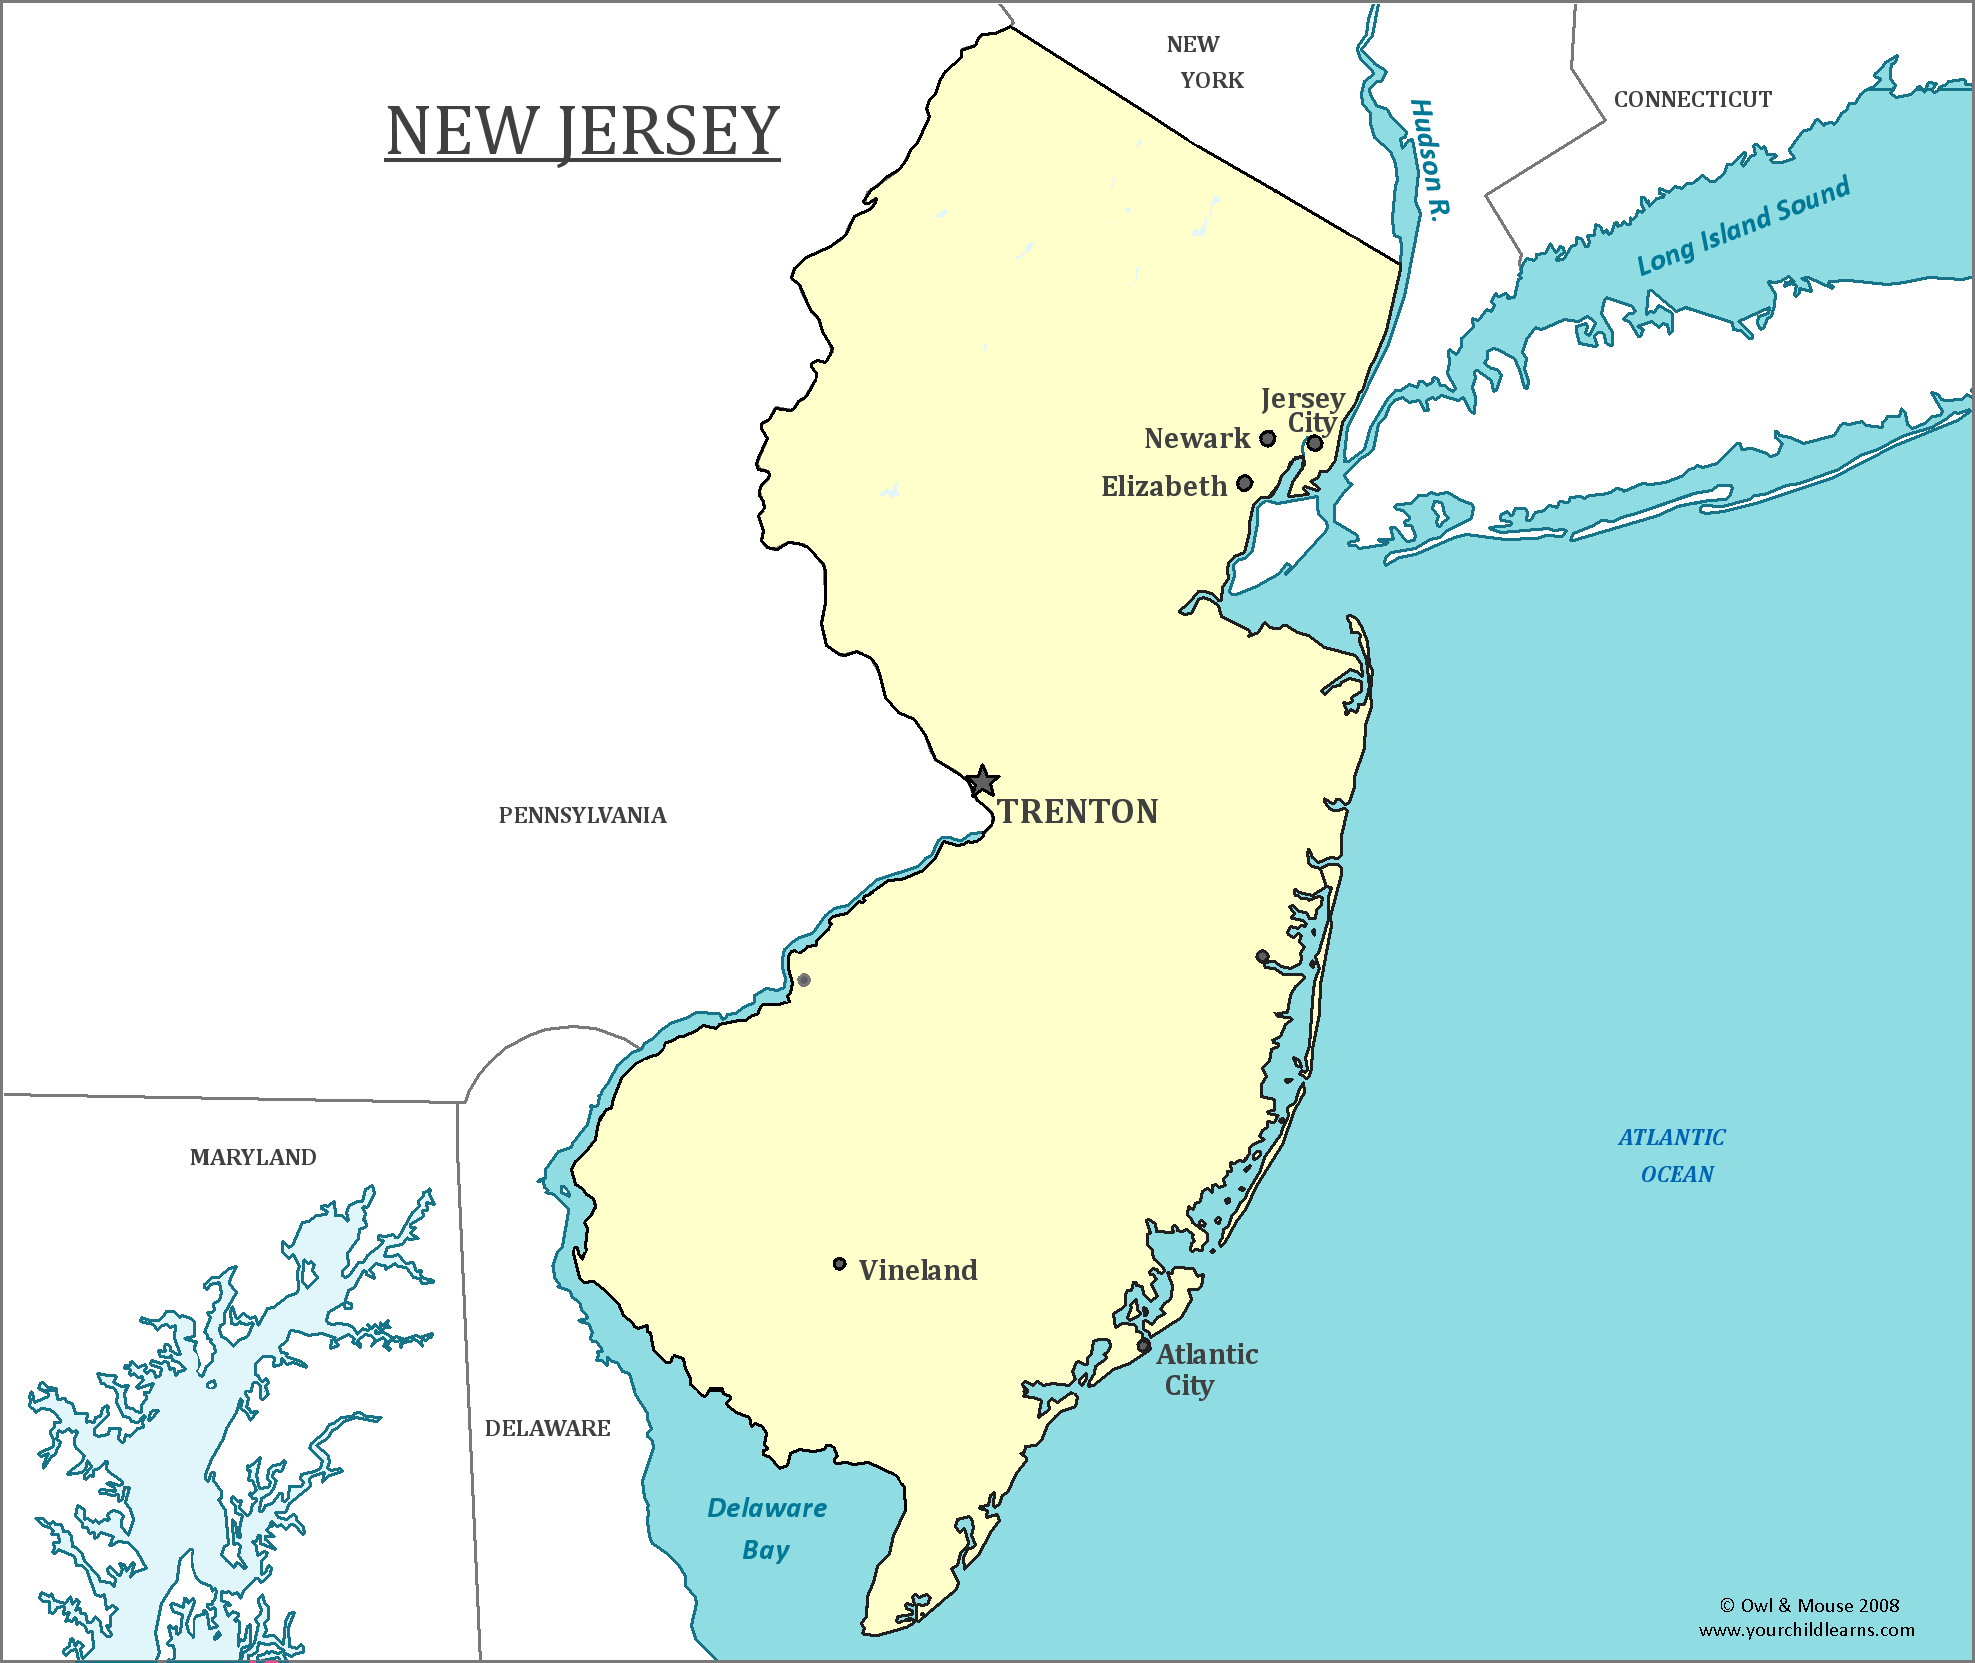 New Jersey State Map New Jersey State Map   Map of New Jersey and Information About the